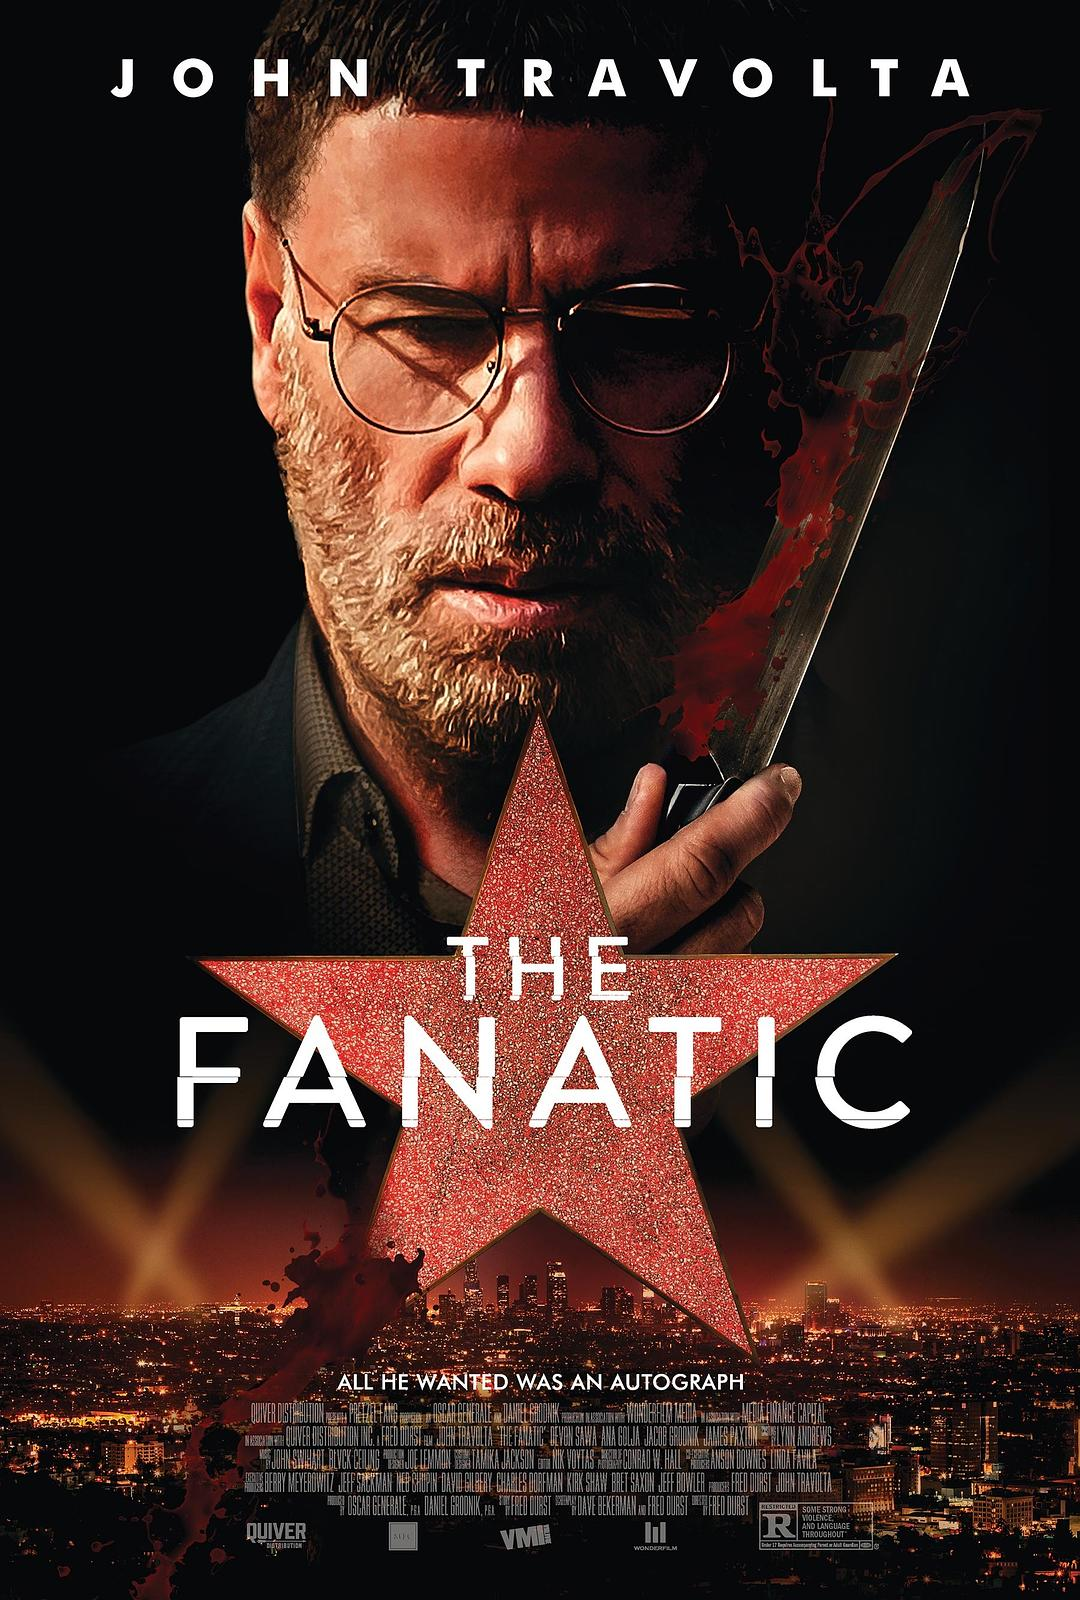 悠悠MP4_MP4电影下载_狂热 The.Fanatic.2019.1080p.BluRay.x264-ROVERS 5.47GB